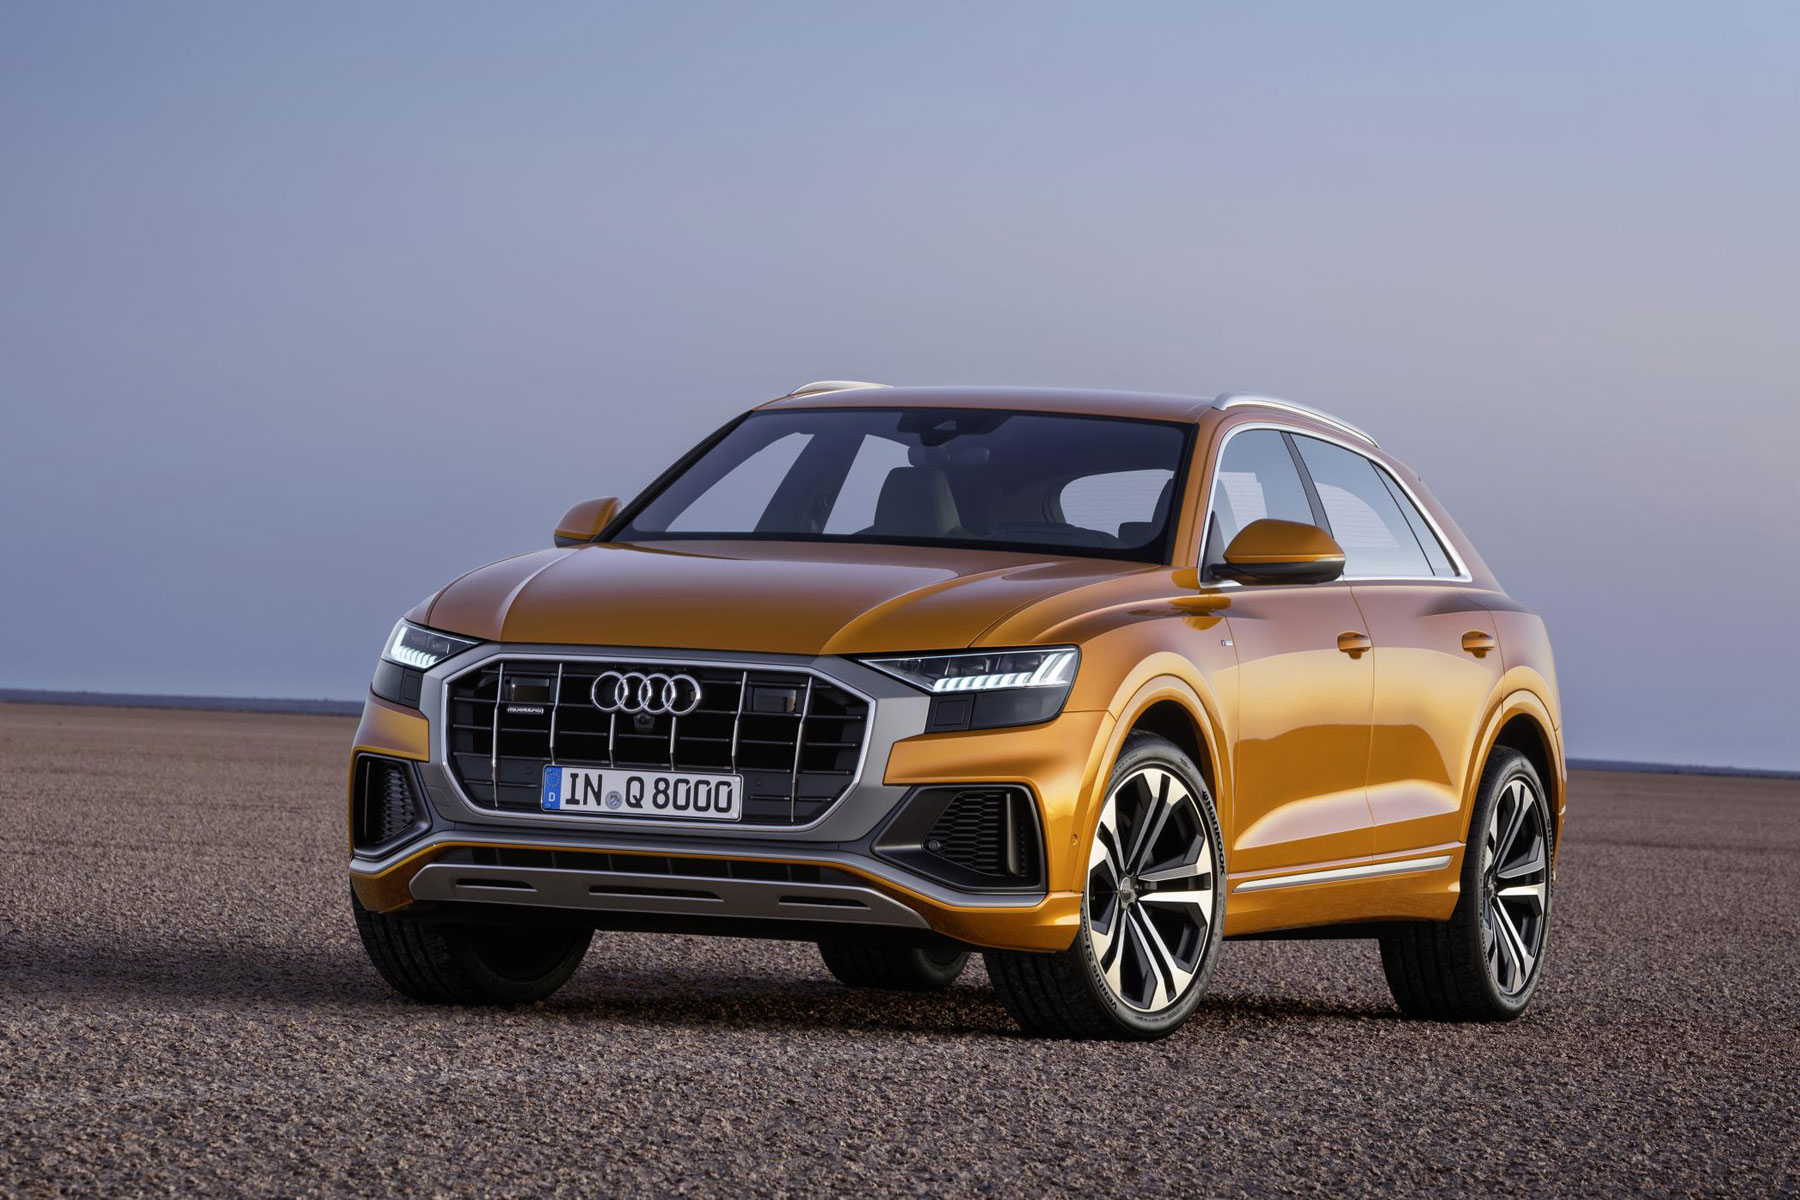 new audi q8 revealed luxury suv targets range rover sport. Black Bedroom Furniture Sets. Home Design Ideas